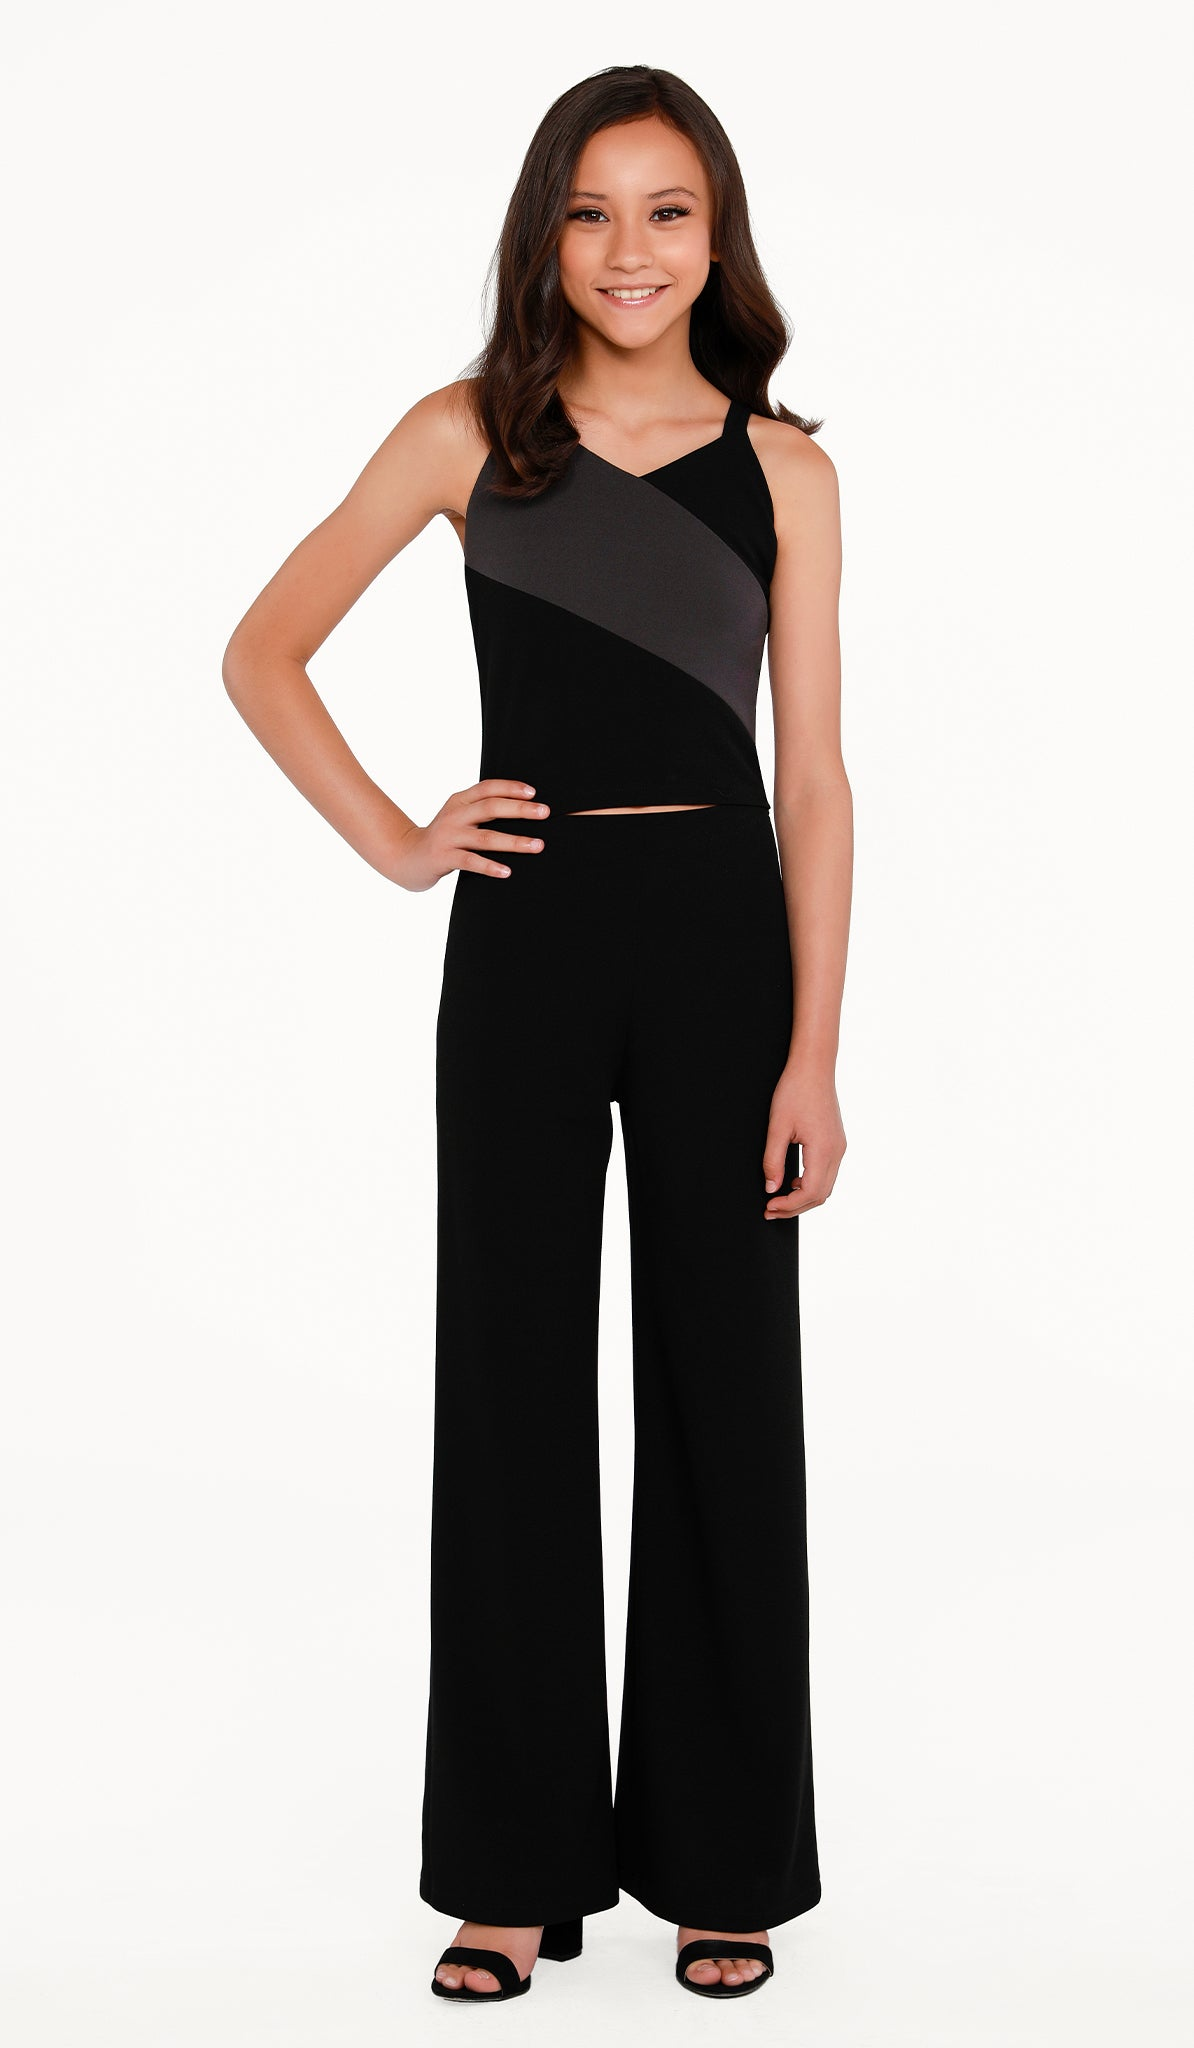 THE DIAGONAL TOP PANT SET - Sallymiller.com - [variant title] - | Event & Party Dresses for Tween Girls & Juniors | Weddings Dresses, Bat Mitzvah Dresses, Sweet Sixteen Dresses, Graduation Dresses, Birthday Party Dresses, Bar Mitzvah Dresses, Cotillion Dresses